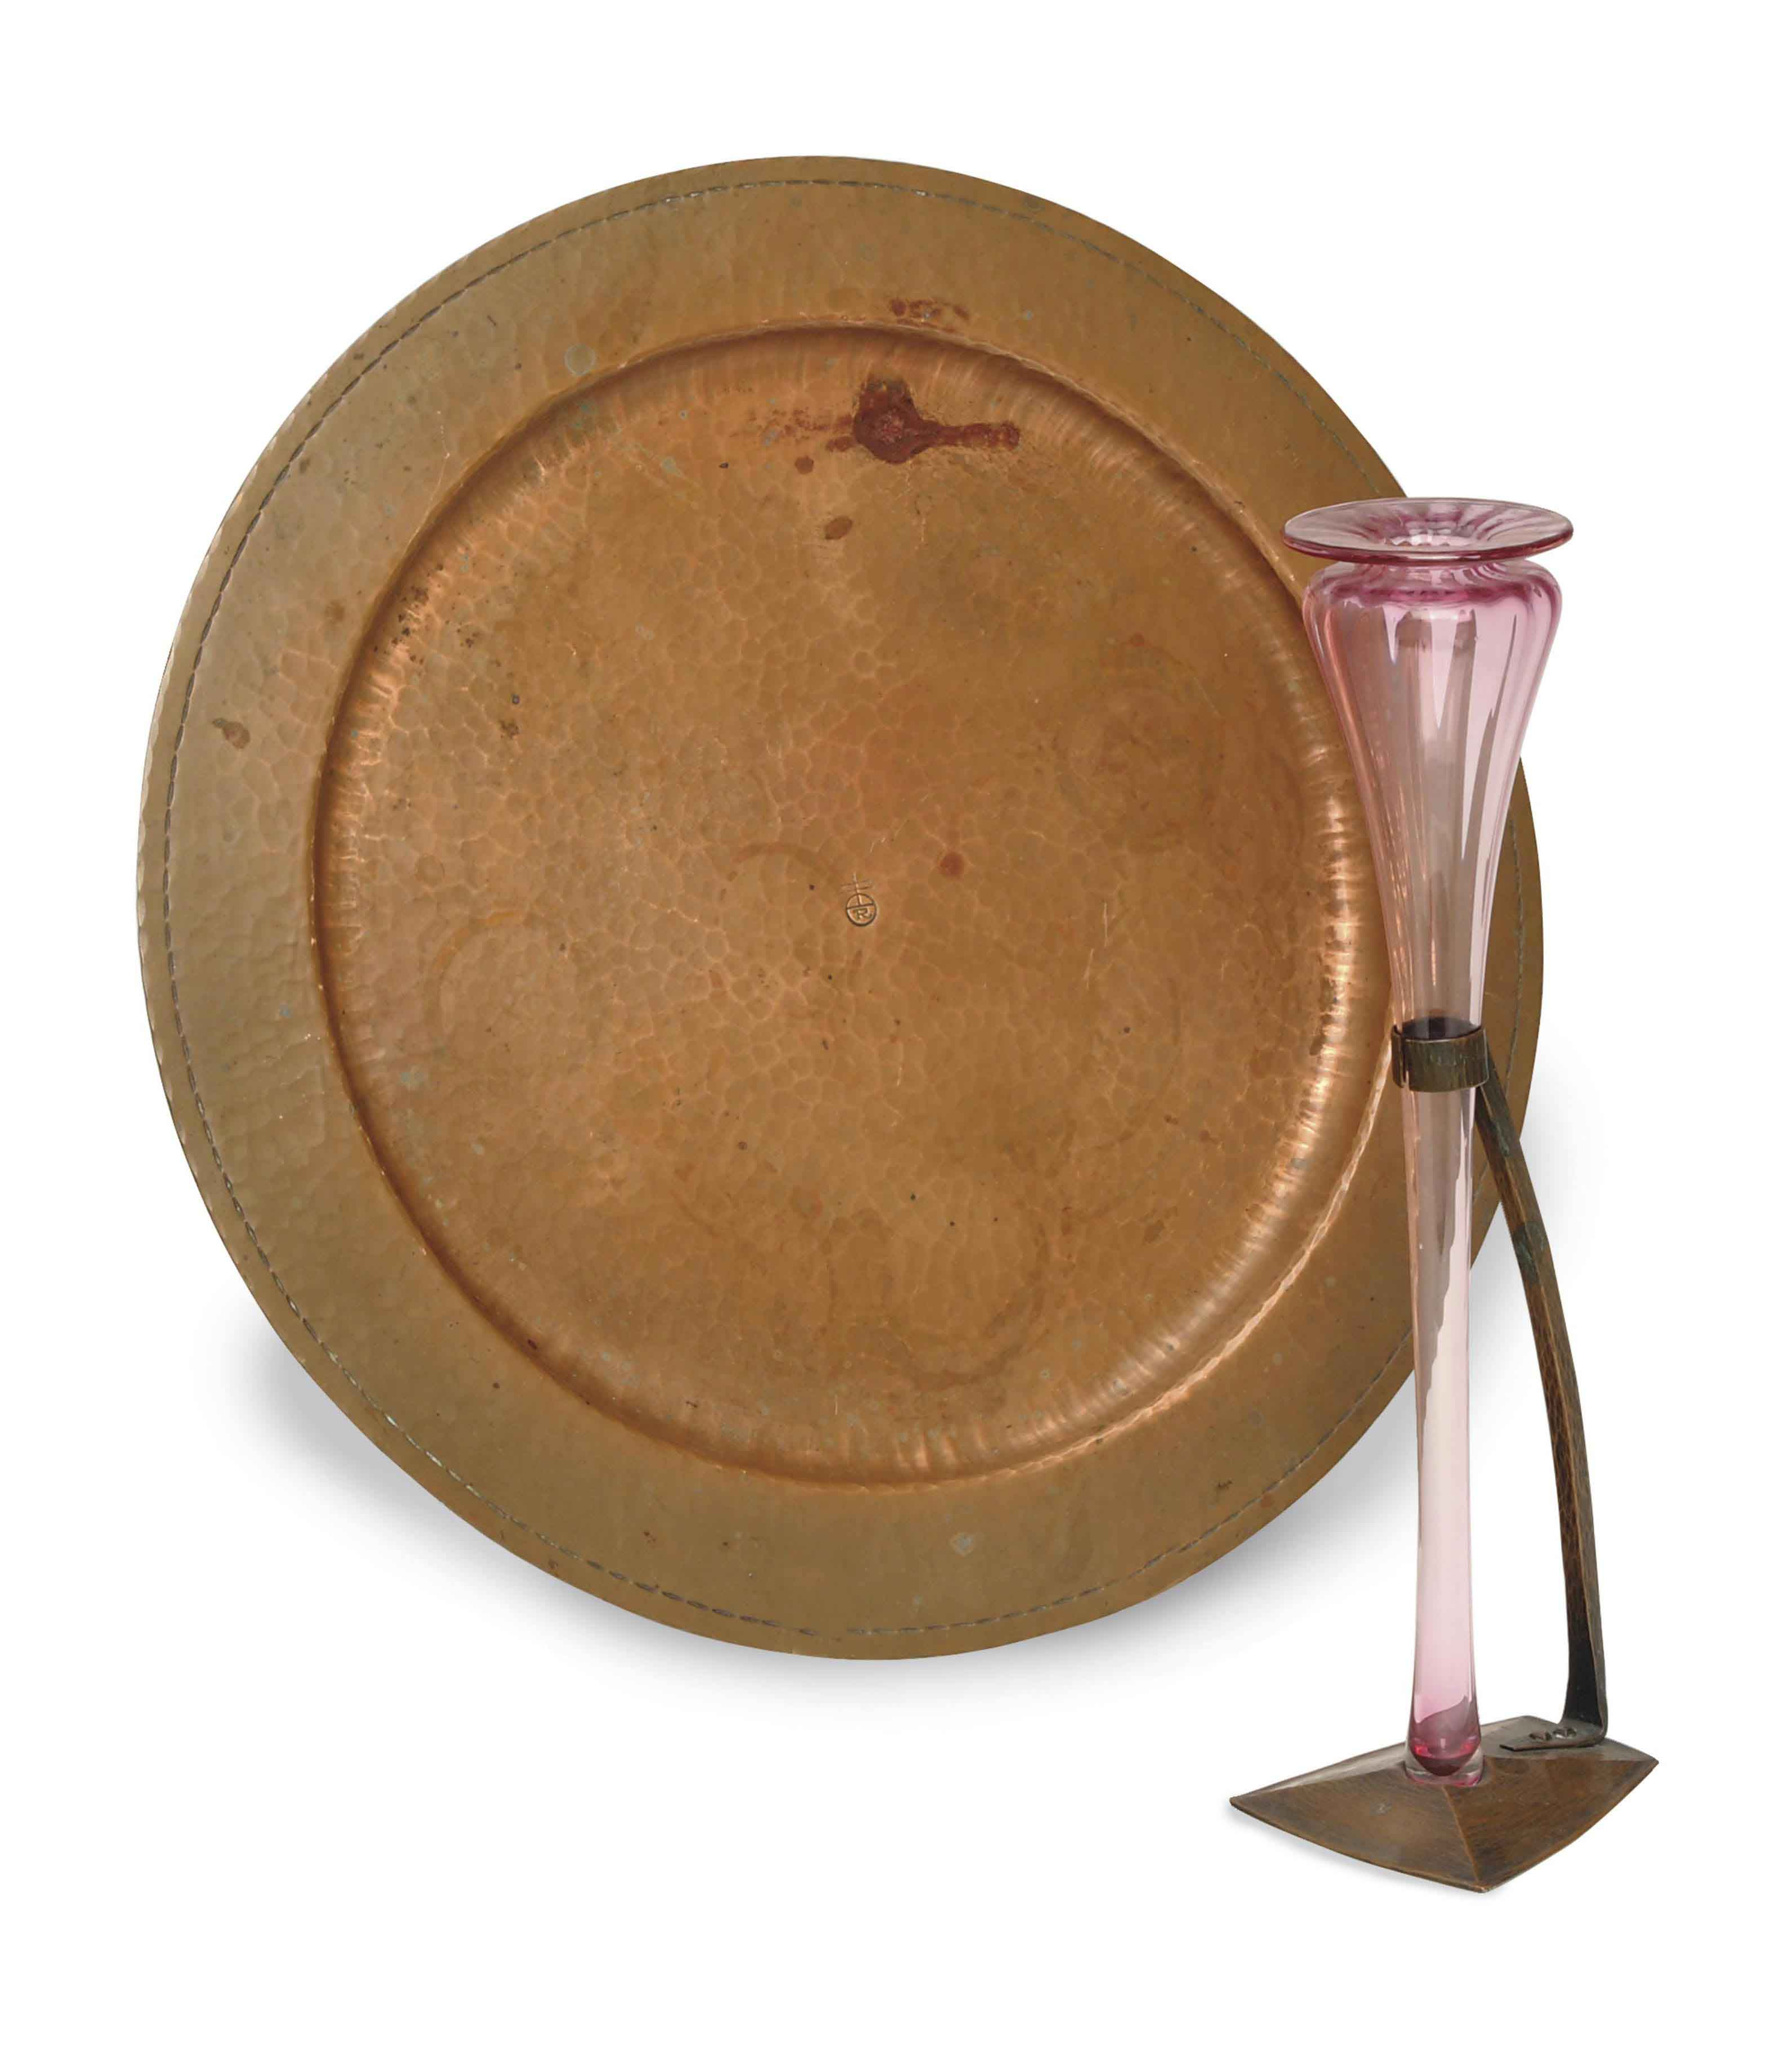 AN AMERICA ARTS AND CRAFTS COPPER BUD VASE MOUNT AND A TRAY,